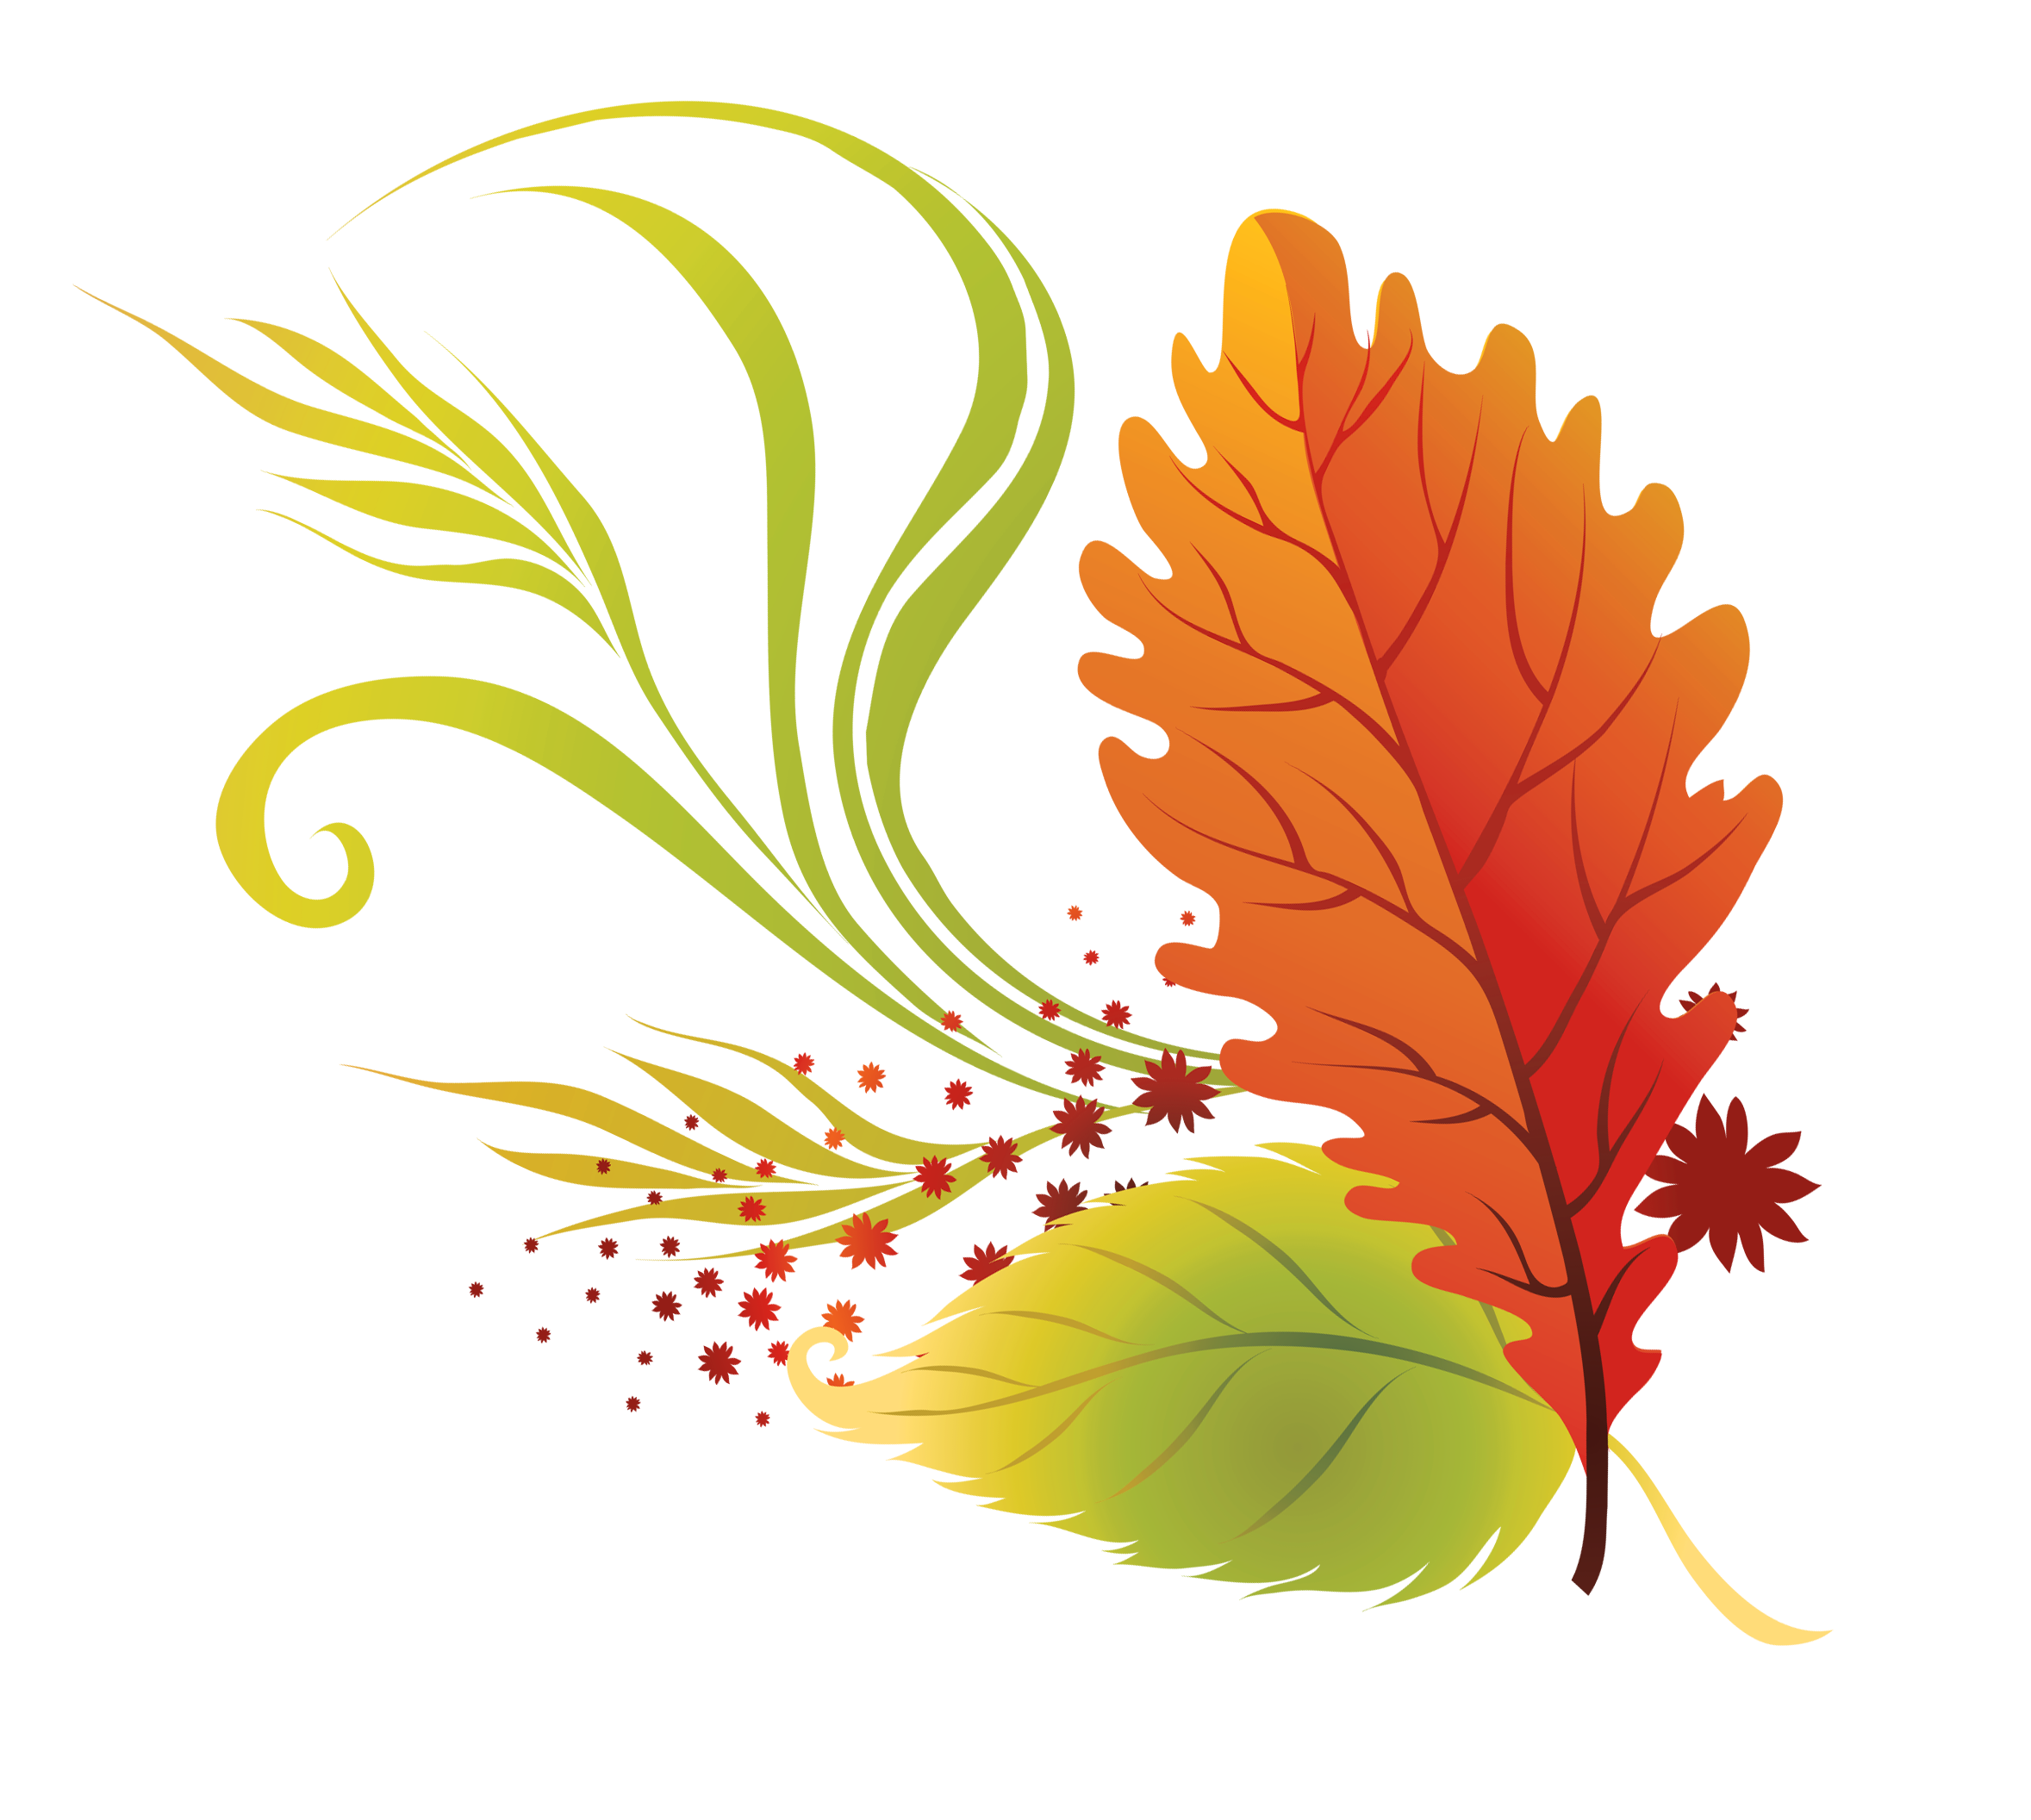 fall leaves clip art beautiful autumn clipart 2 image 10233 [ 2357 x 2112 Pixel ]